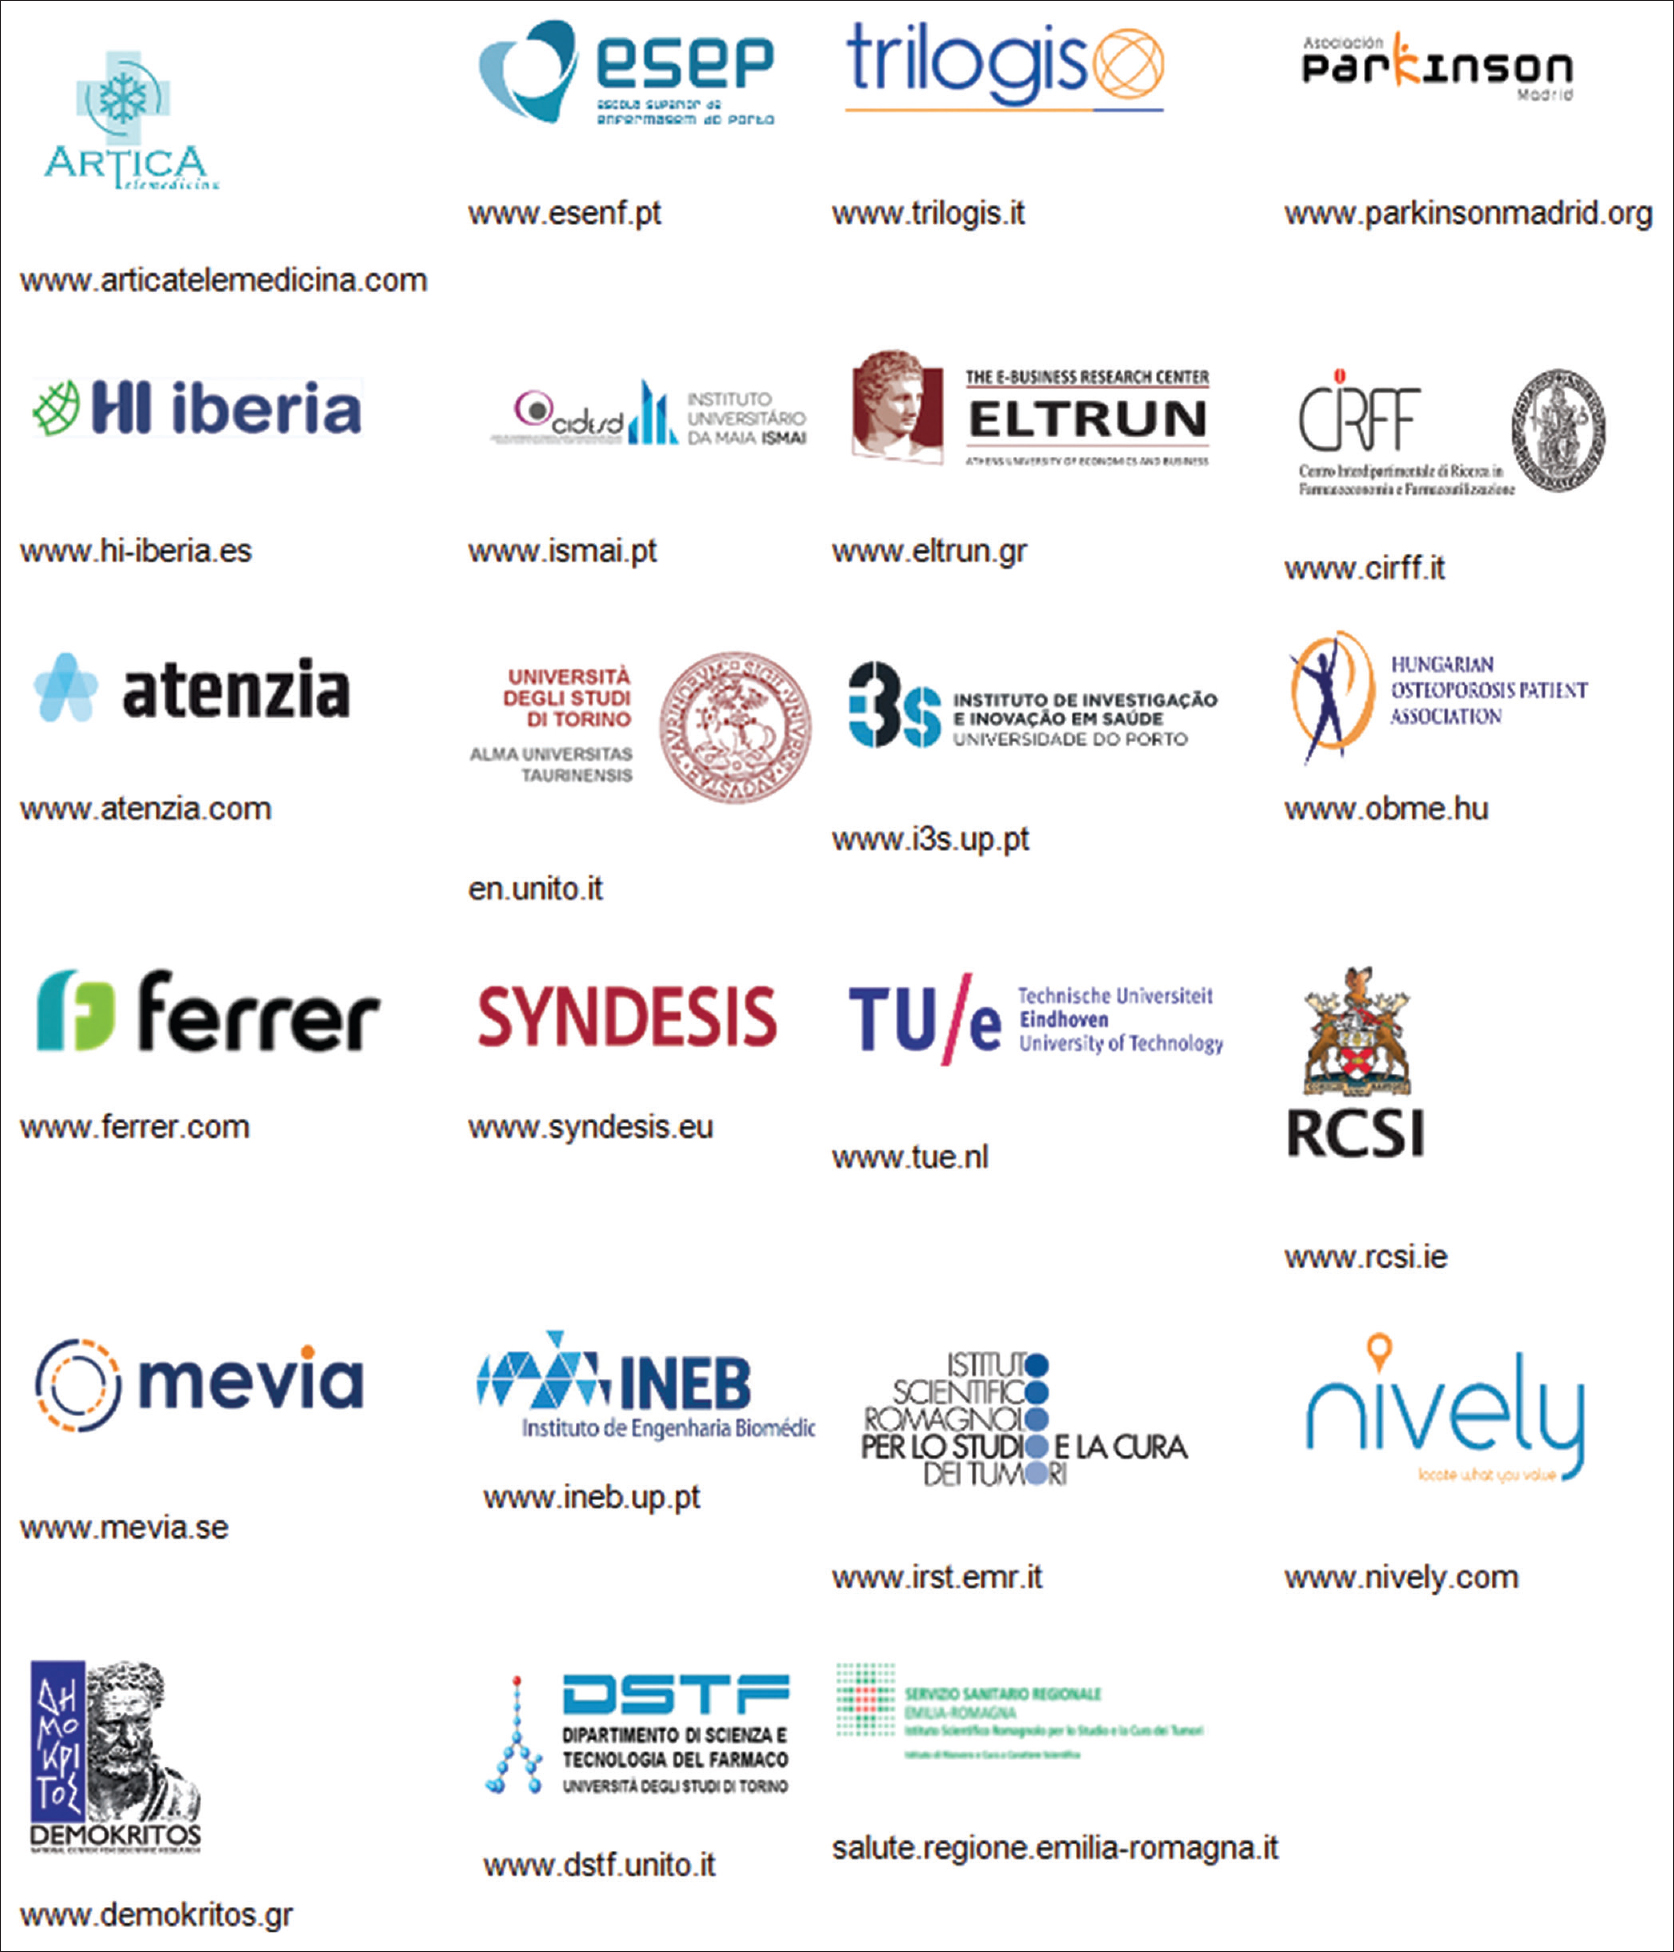 Figure 2: Indicative list of the Entities (universities, SMEs, Research Centers) that are actively participating in the A1 Synergy Group. The A1 Synergy group has been established to study common ICT and integrated care topics between A1, B3, C2, A2 and A3 action groups. The A1 Synergy activities aim to harness the collected data from relevant running pilots and from data sets from the above EIP on AHA action groups as well as from global best practices and results from specialized workshops. Its general objective is to study if the role of integrated information systems that connect patient with health care professionals, pharmacists and other stakeholders can boost adherence to old age people in long-term therapies and polypharmacy